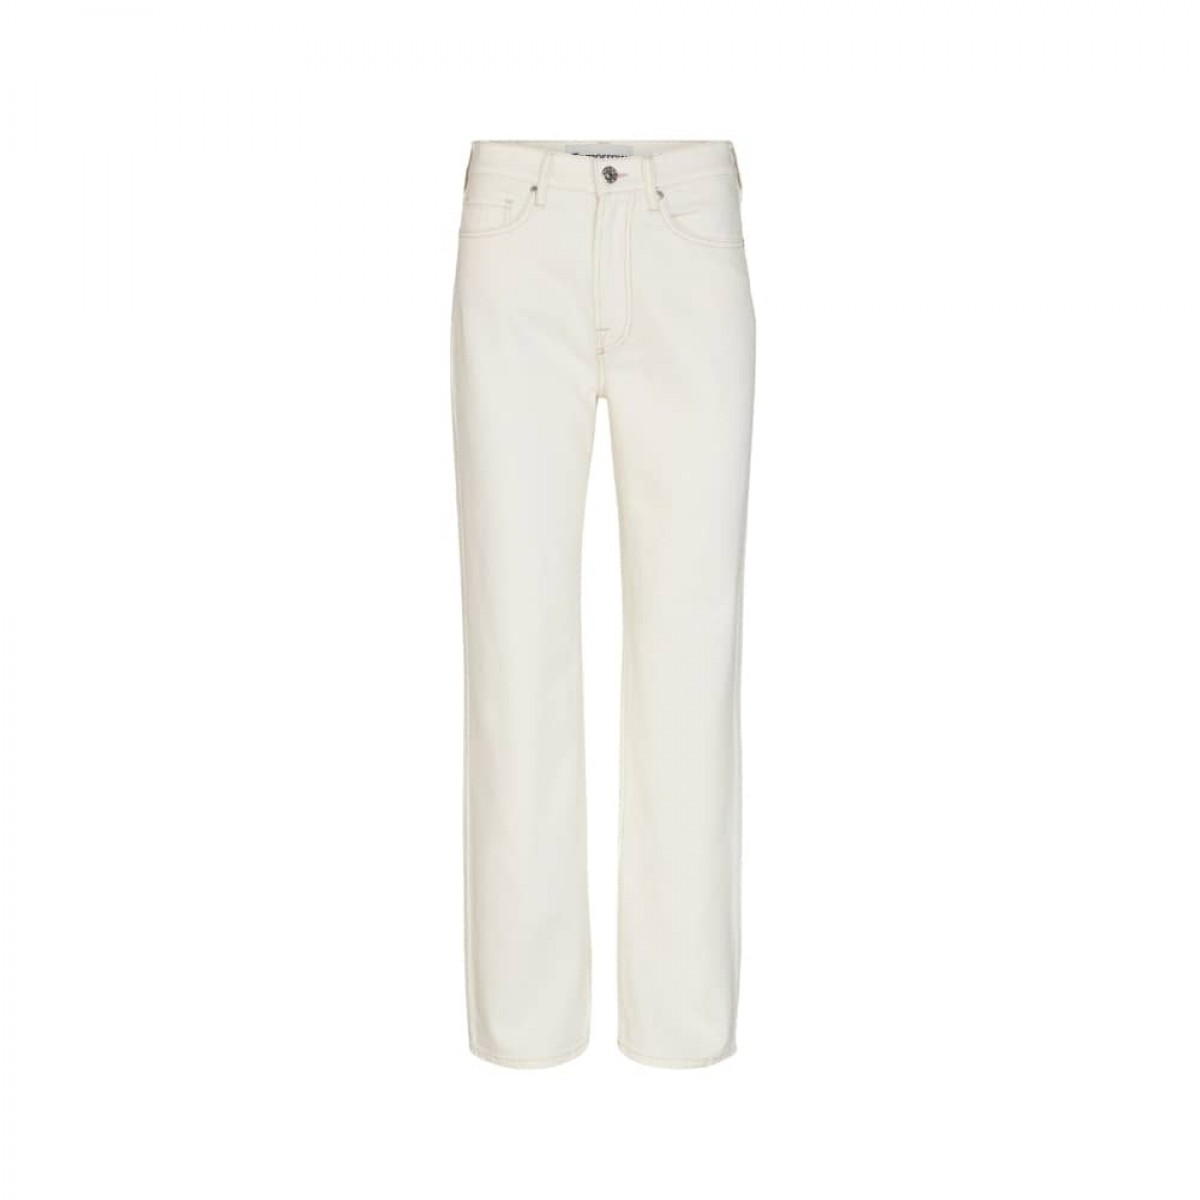 brown straight jeans - ecru - front